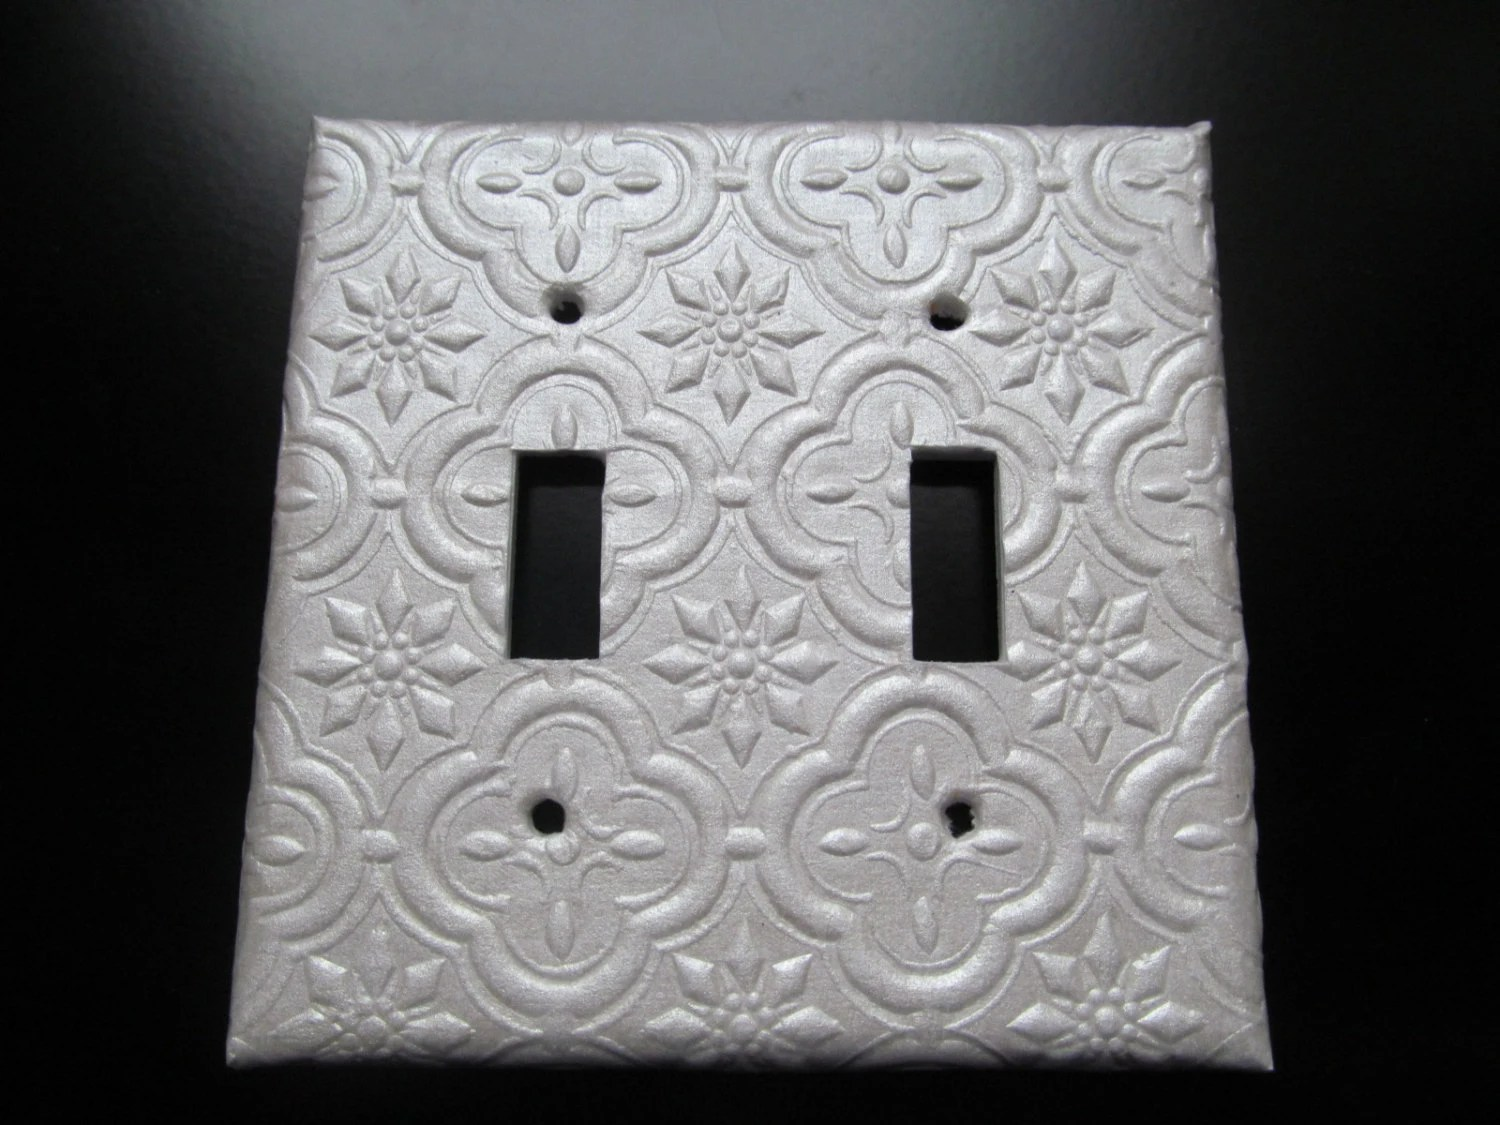 Decorative Light Plate Covers Handmade Decorative Light Switch Covers Plates Textured